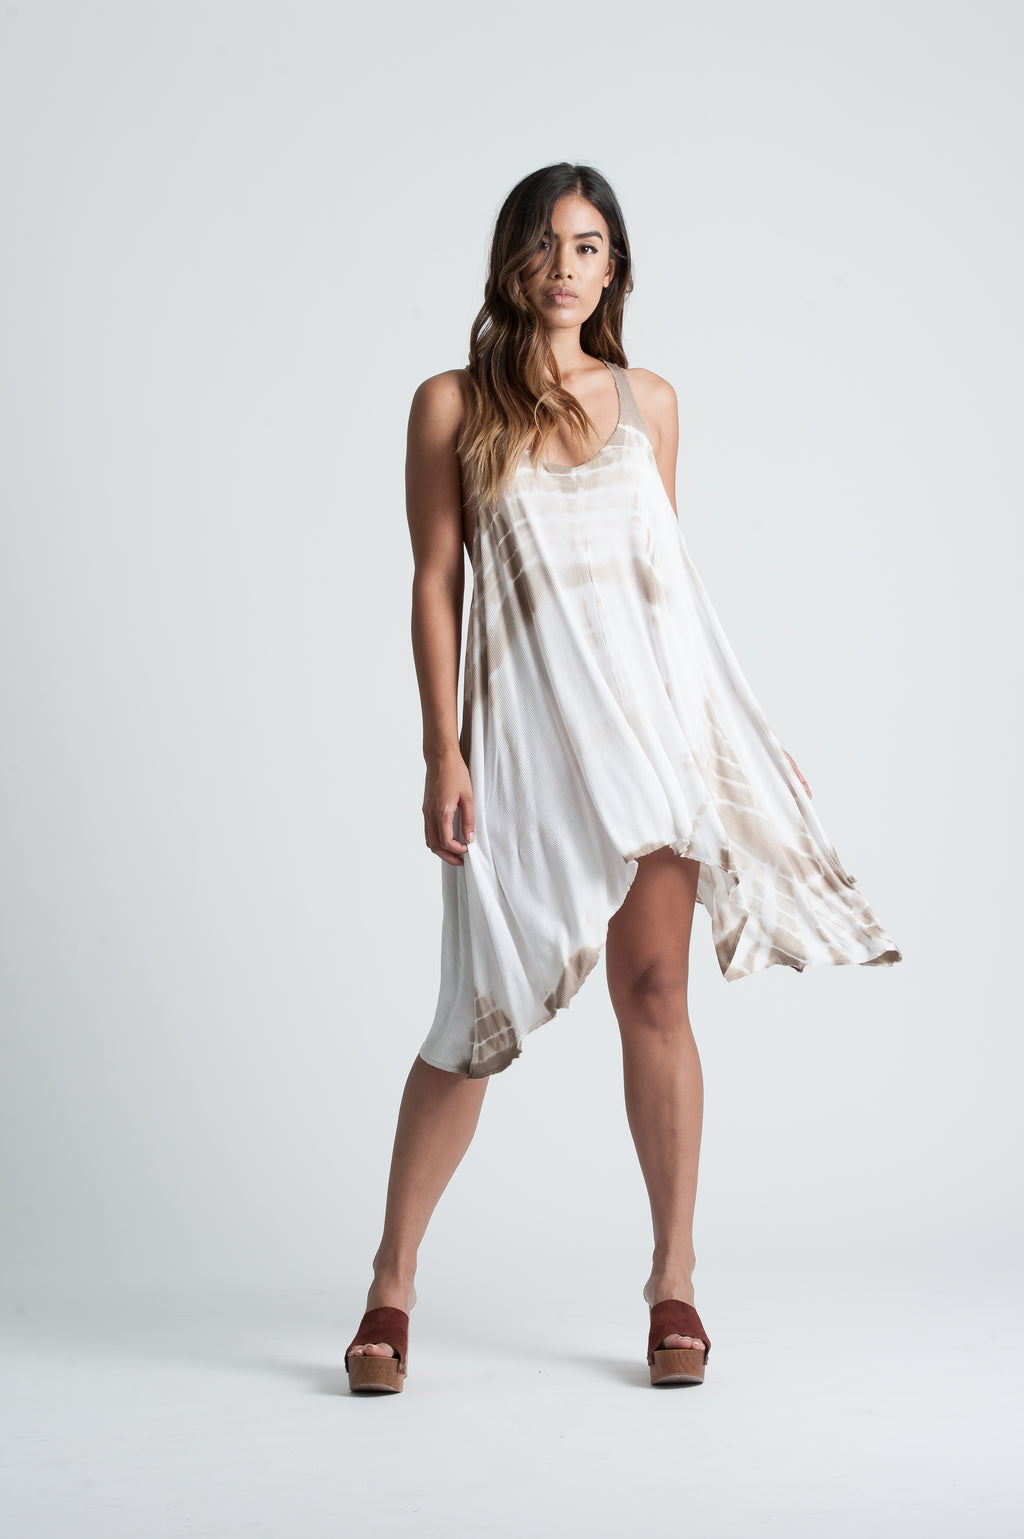 KRYSTLE RACER BACK DRESS | TAUPE TIE DYE